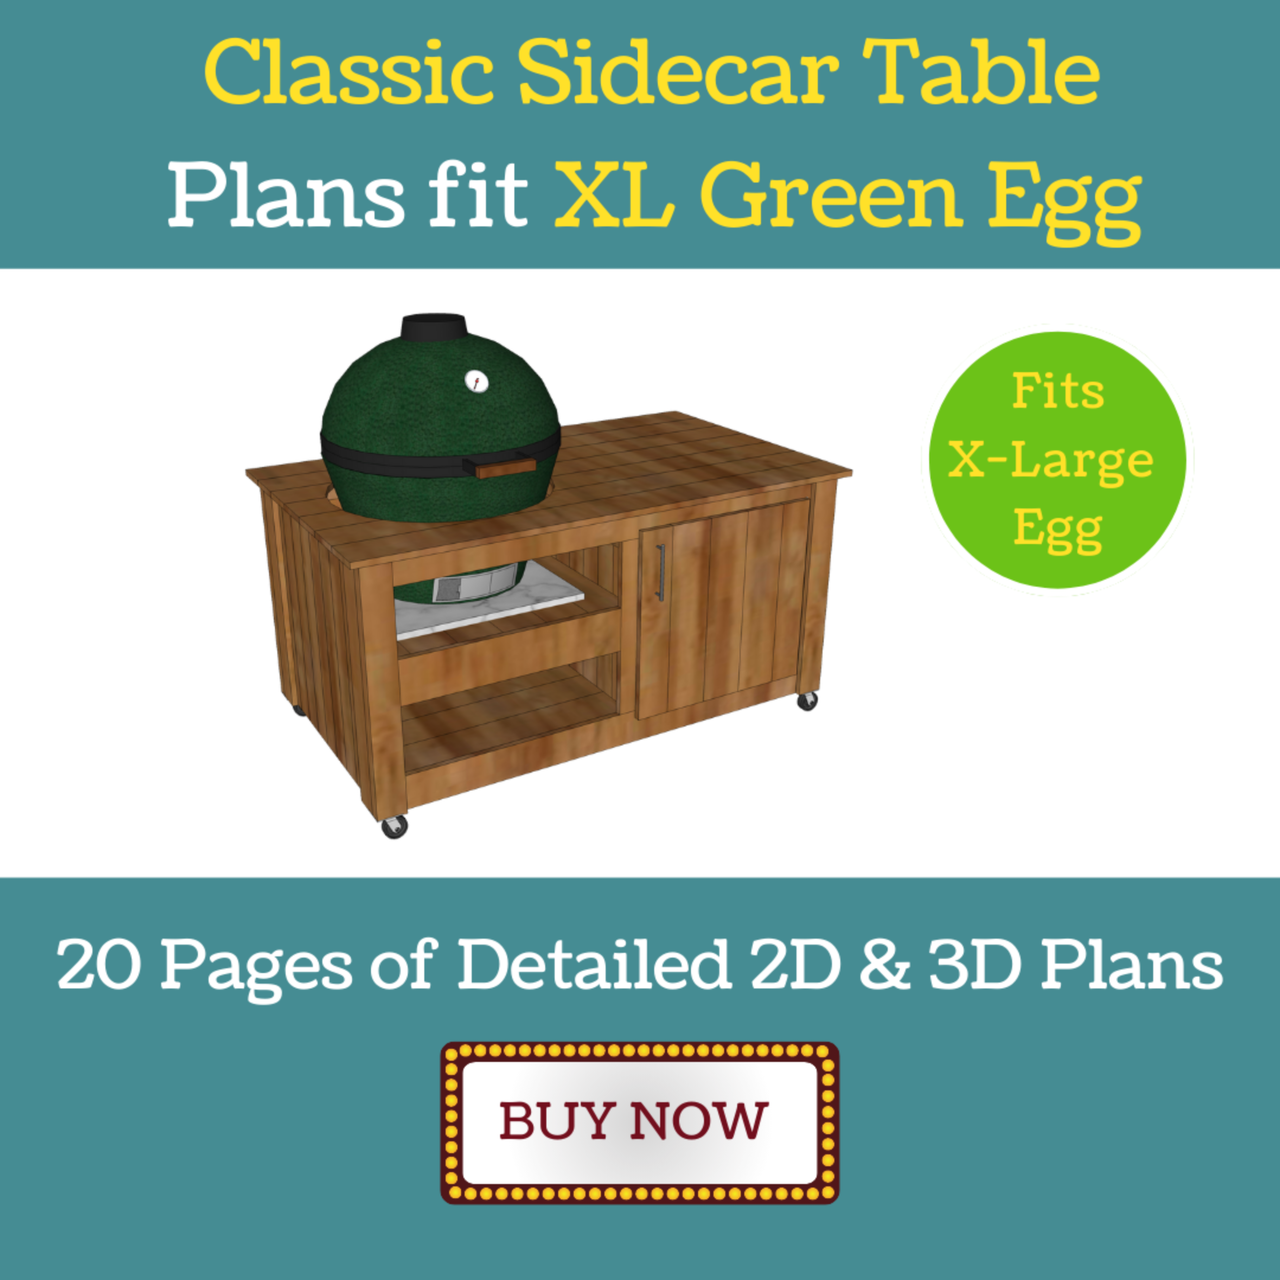 Sidecar Grill Table Plans for XL Green Egg